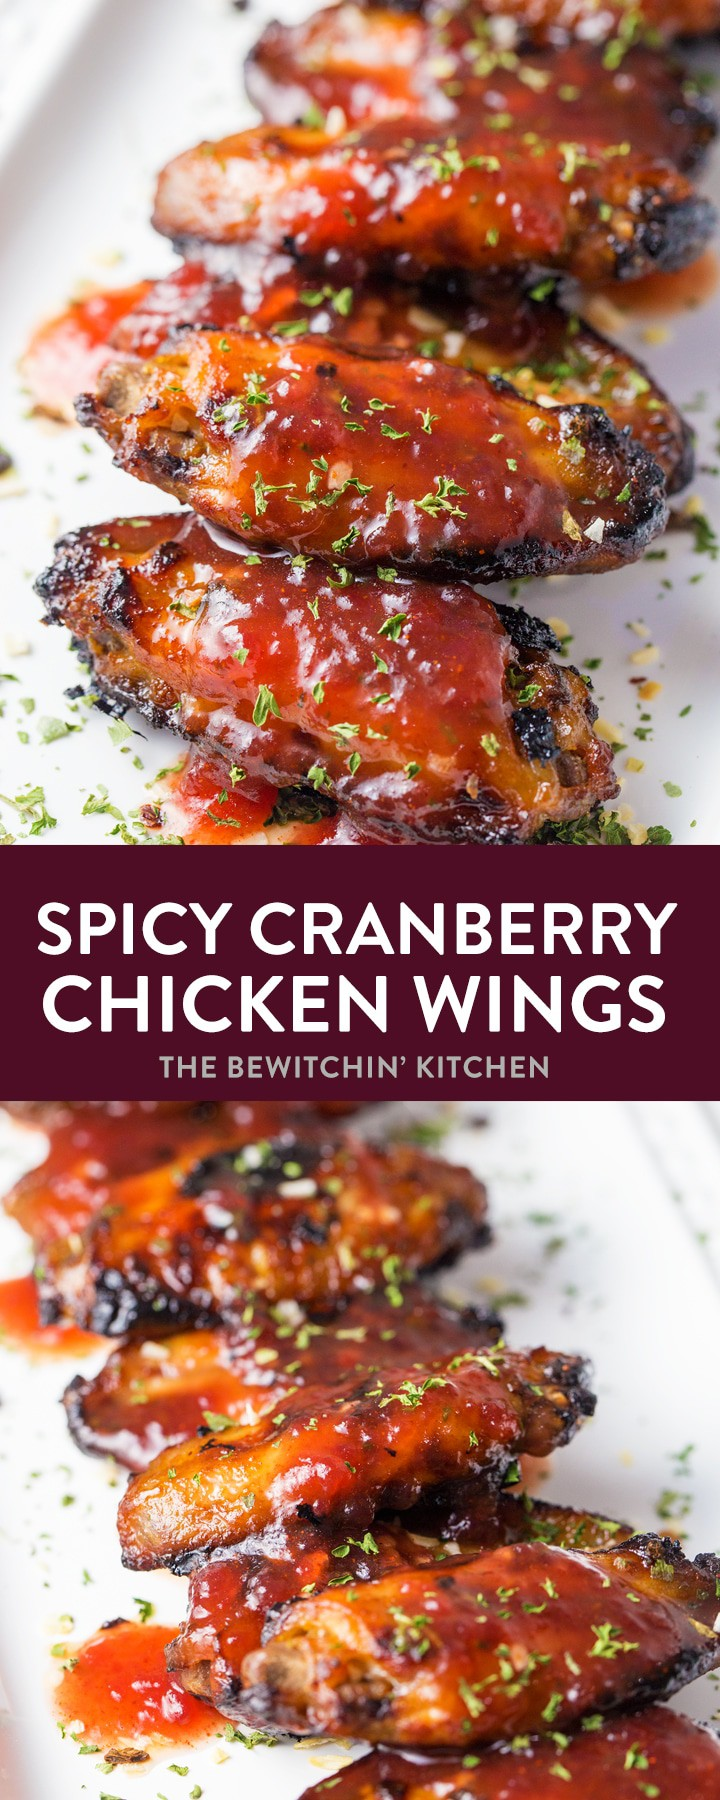 Looking for an easy appetizer recipe? Try these Spicy Cranberry Chicken Wings - hot wings with a touch of cayenne spice! Perfect for game day recipes, party appetizers, or Christmas Hors d'oeuvres. Best party? They use all the leftover cranberry sauce! #hotwings #chickenwingrecipes #leftovercranberrysauce #chickenrecipes #cranberrysaucerecipes #thebewitchinkitchen